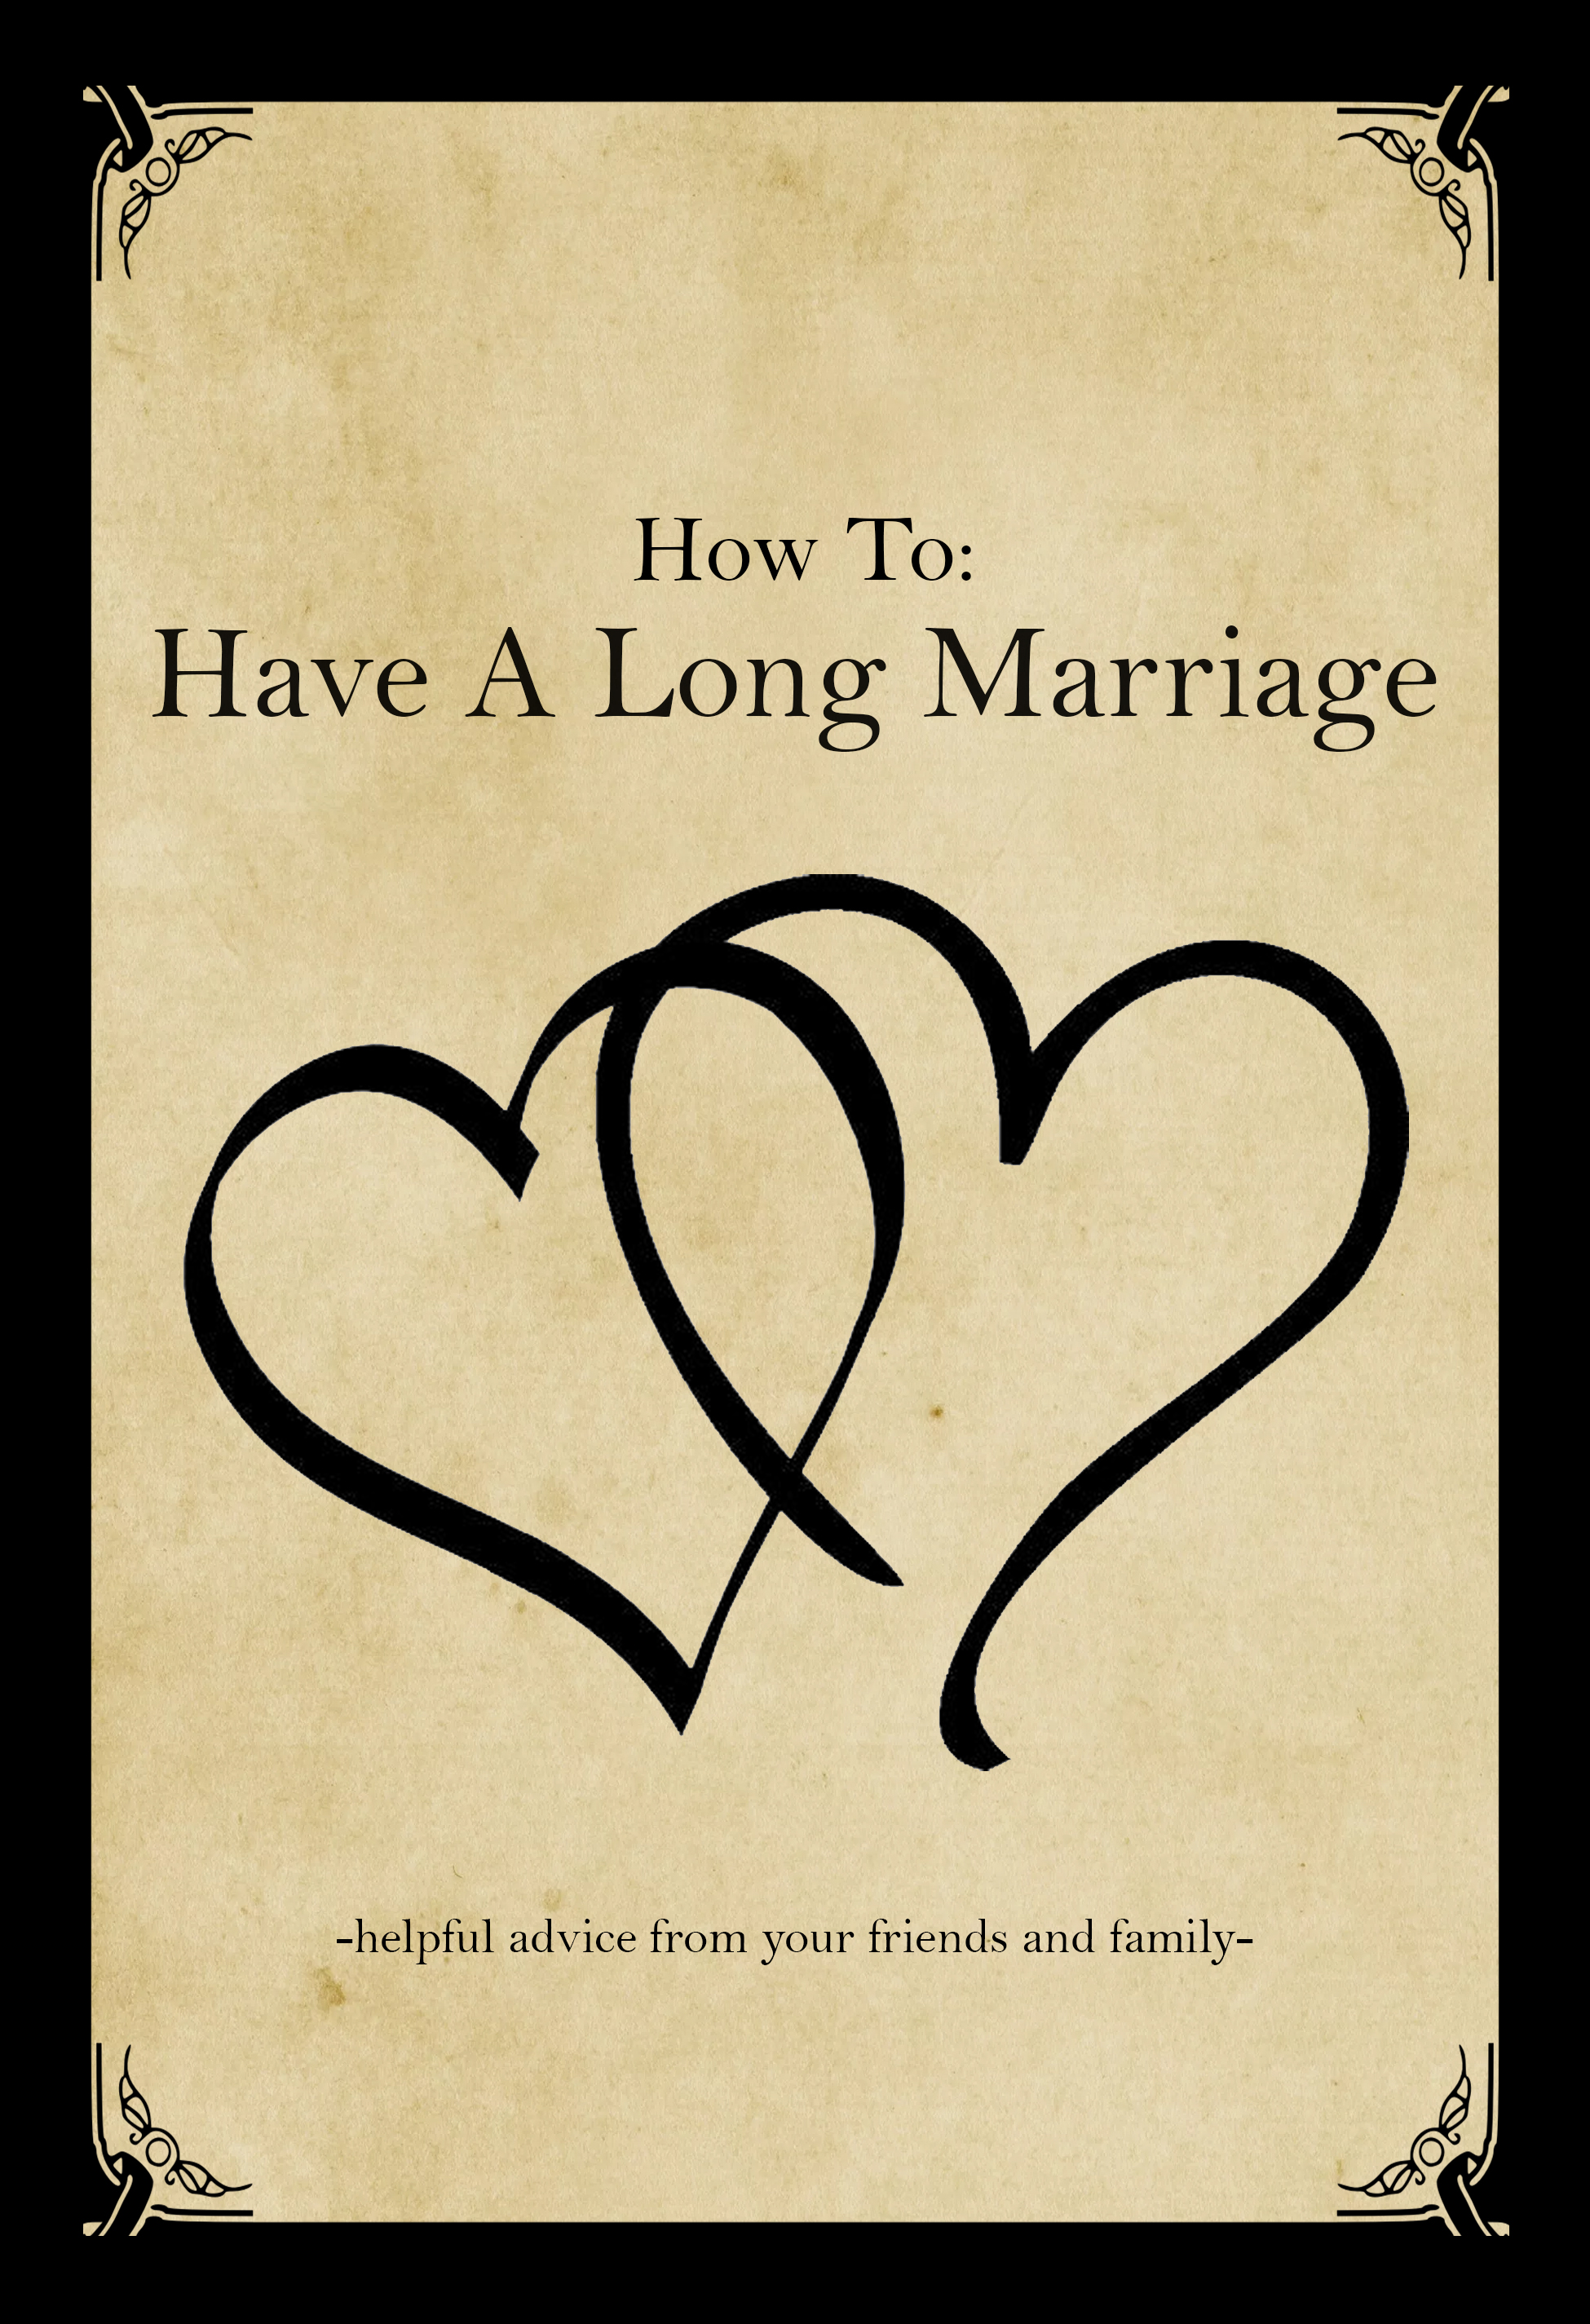 How To Have A Long Marriage Keepsake Book, wonderful gift!